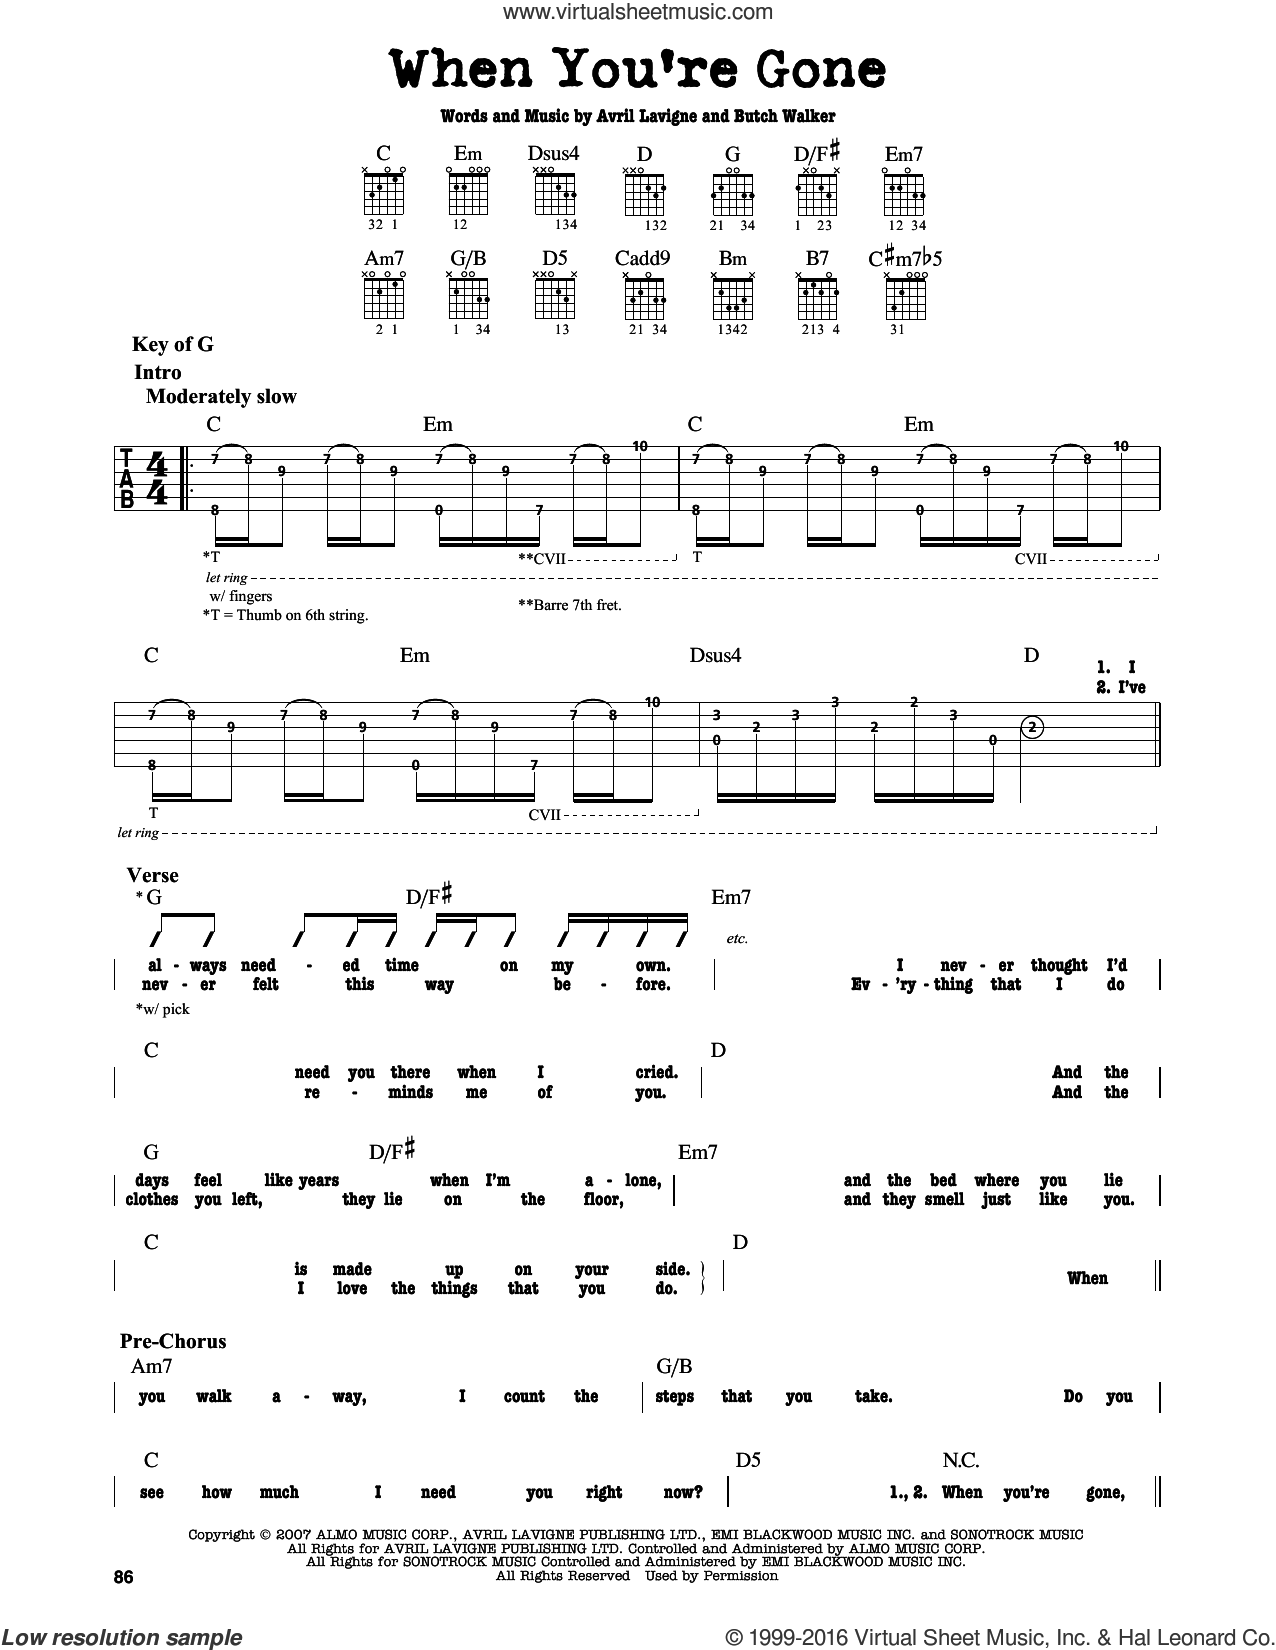 When You're Gone sheet music for guitar solo (lead sheet) by Butch Walker and Avril Lavigne. Score Image Preview.